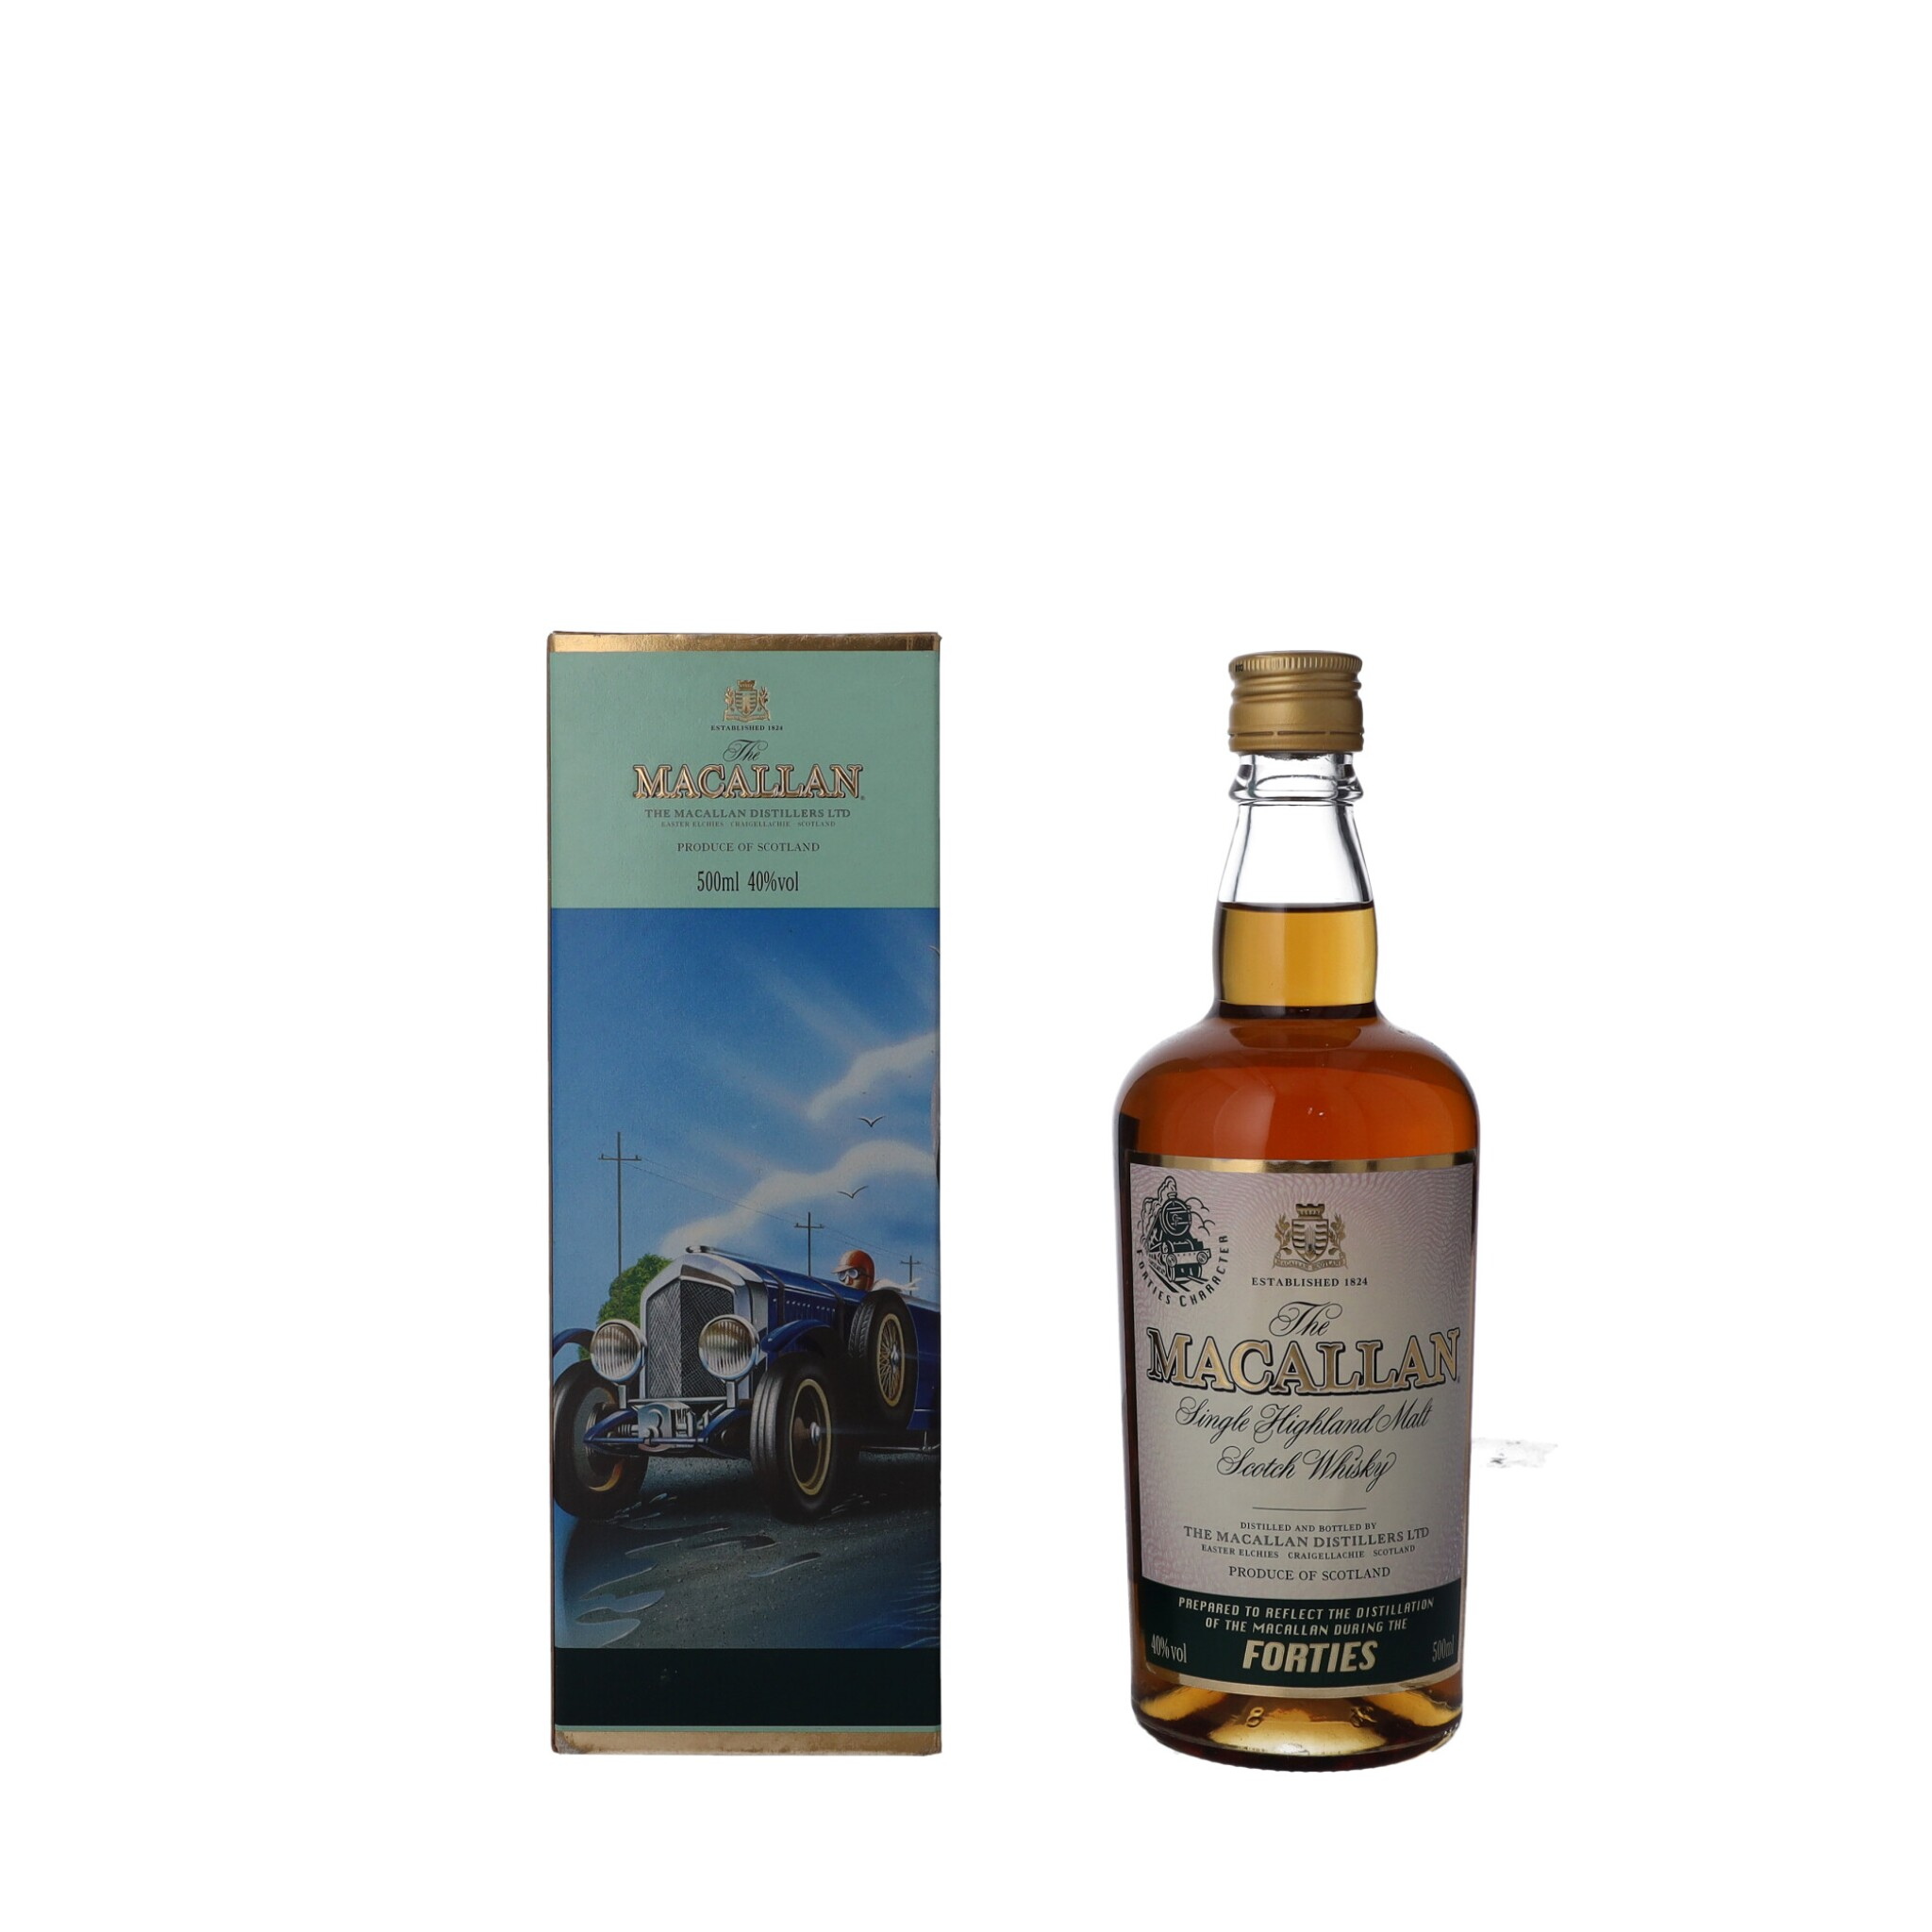 """View full screen - View 1 of Lot 54. The Macallan Travel Decades Series """"Forties"""" 40.0 abv NV (1 BT50)."""